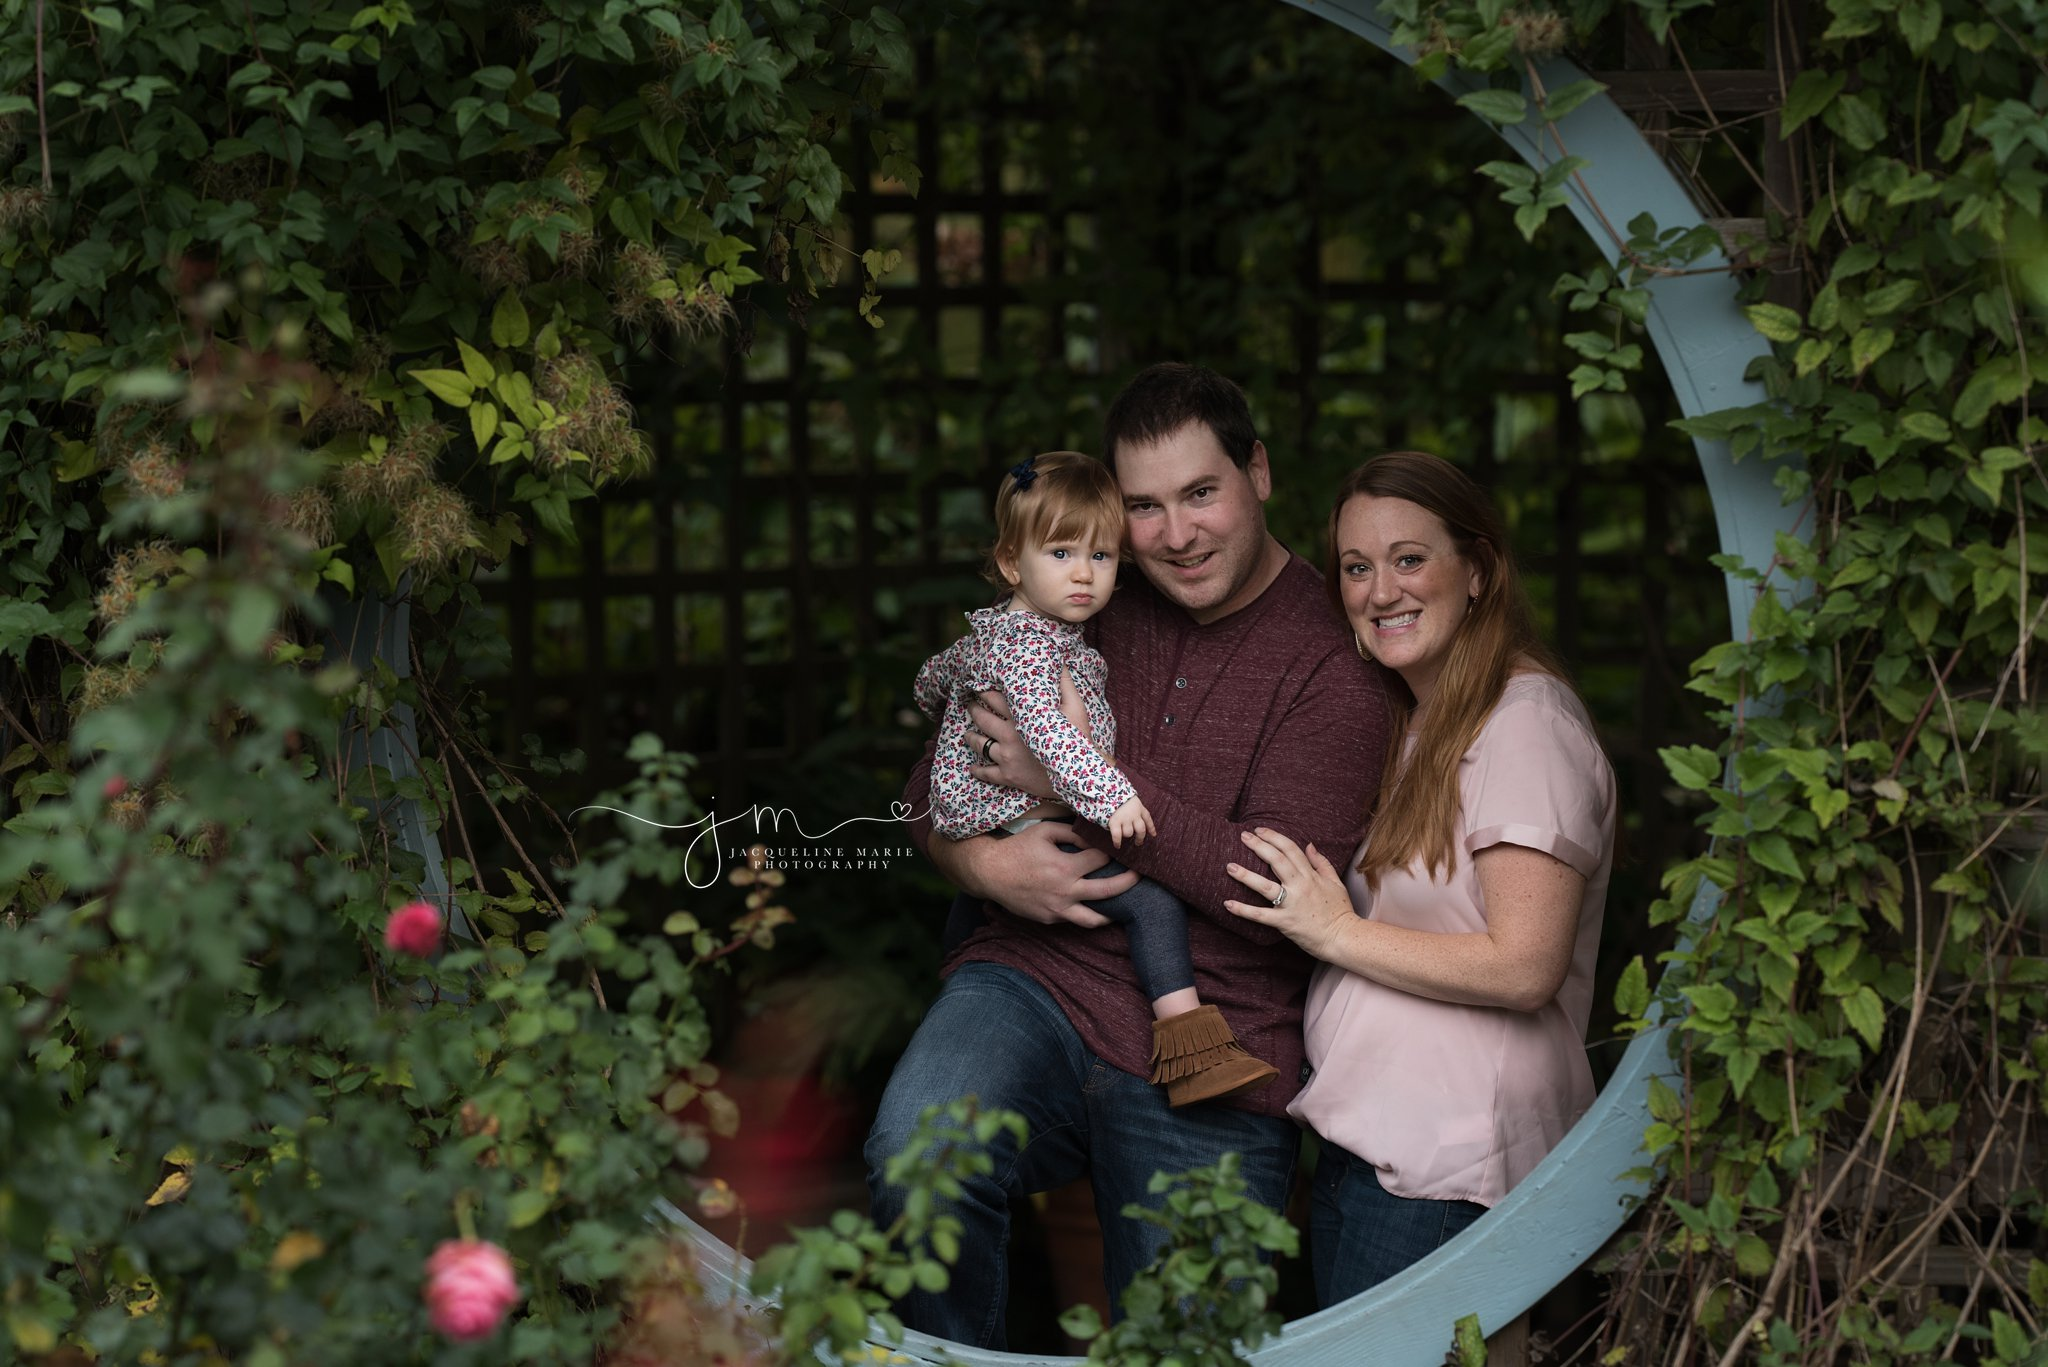 columbus ohio family photographer features image of mother and father holding child for fall family photography